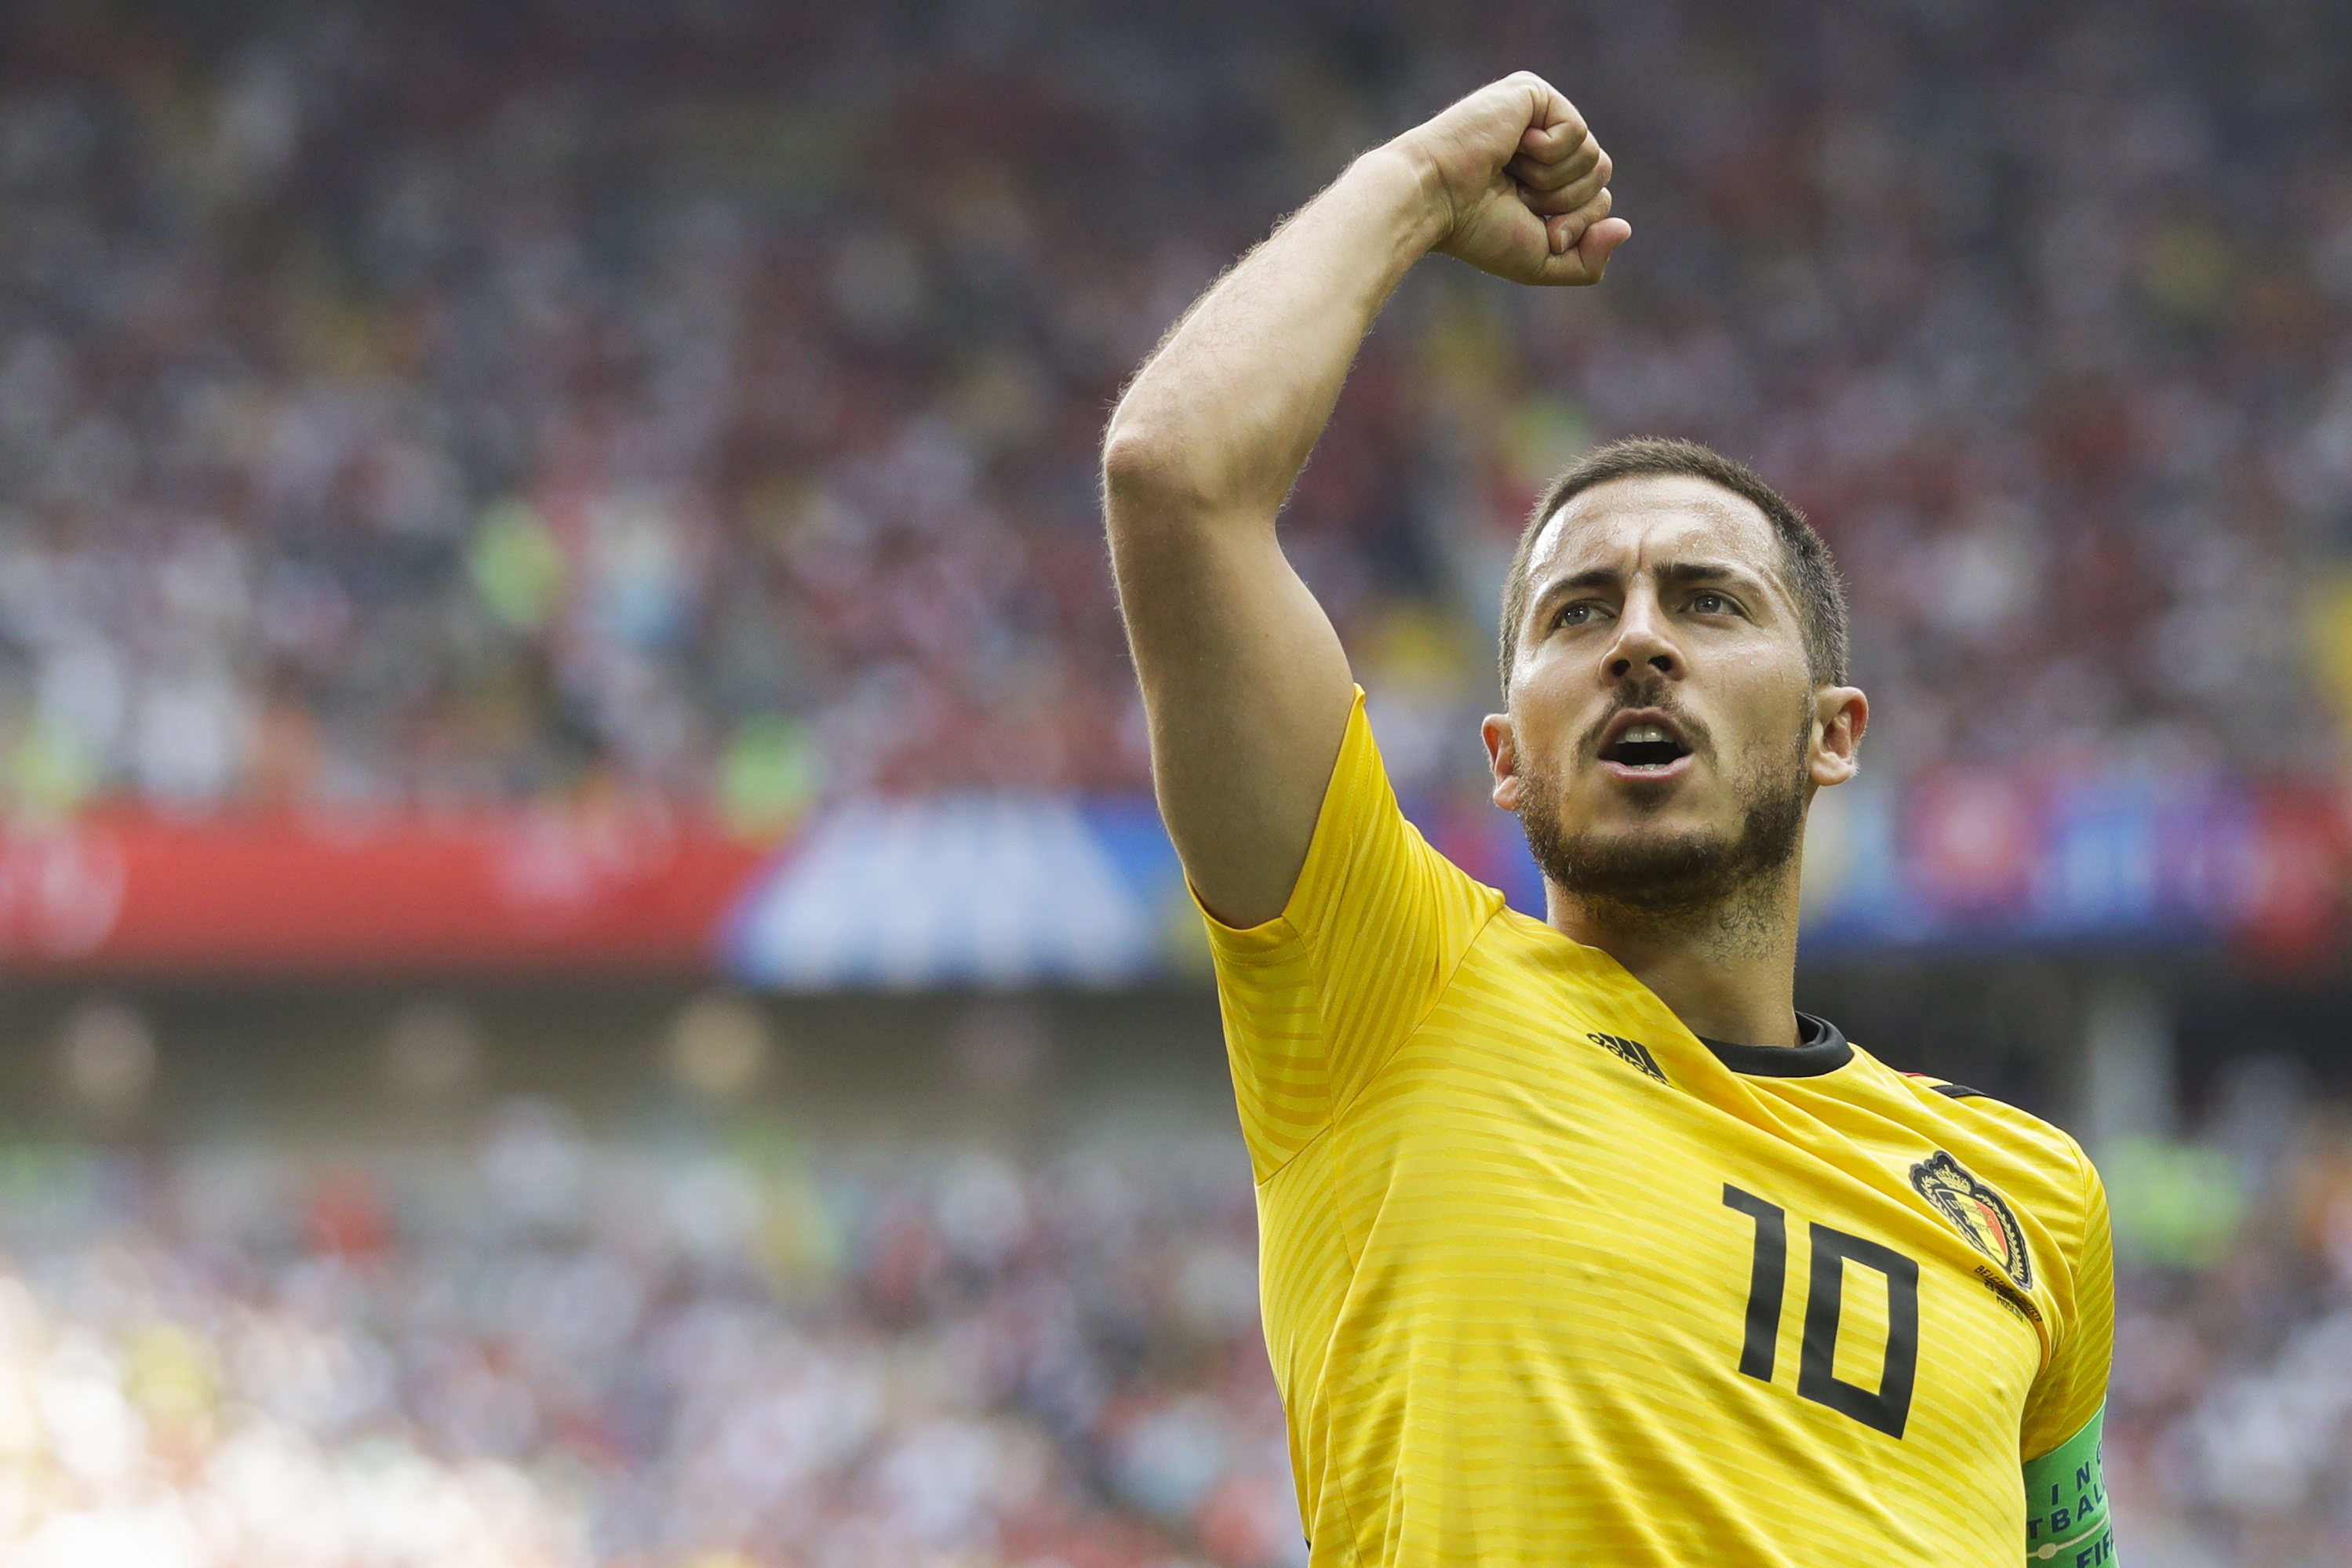 <div class='meta'><div class='origin-logo' data-origin='none'></div><span class='caption-text' data-credit='Matthias Schrader/AP Photo'>Belgium's Eden Hazard celebrates after scoring his side's fourth goal during the group G match between Belgium and Tunisia in the Spartak Stadium in Moscow, Saturday, June 23.</span></div>